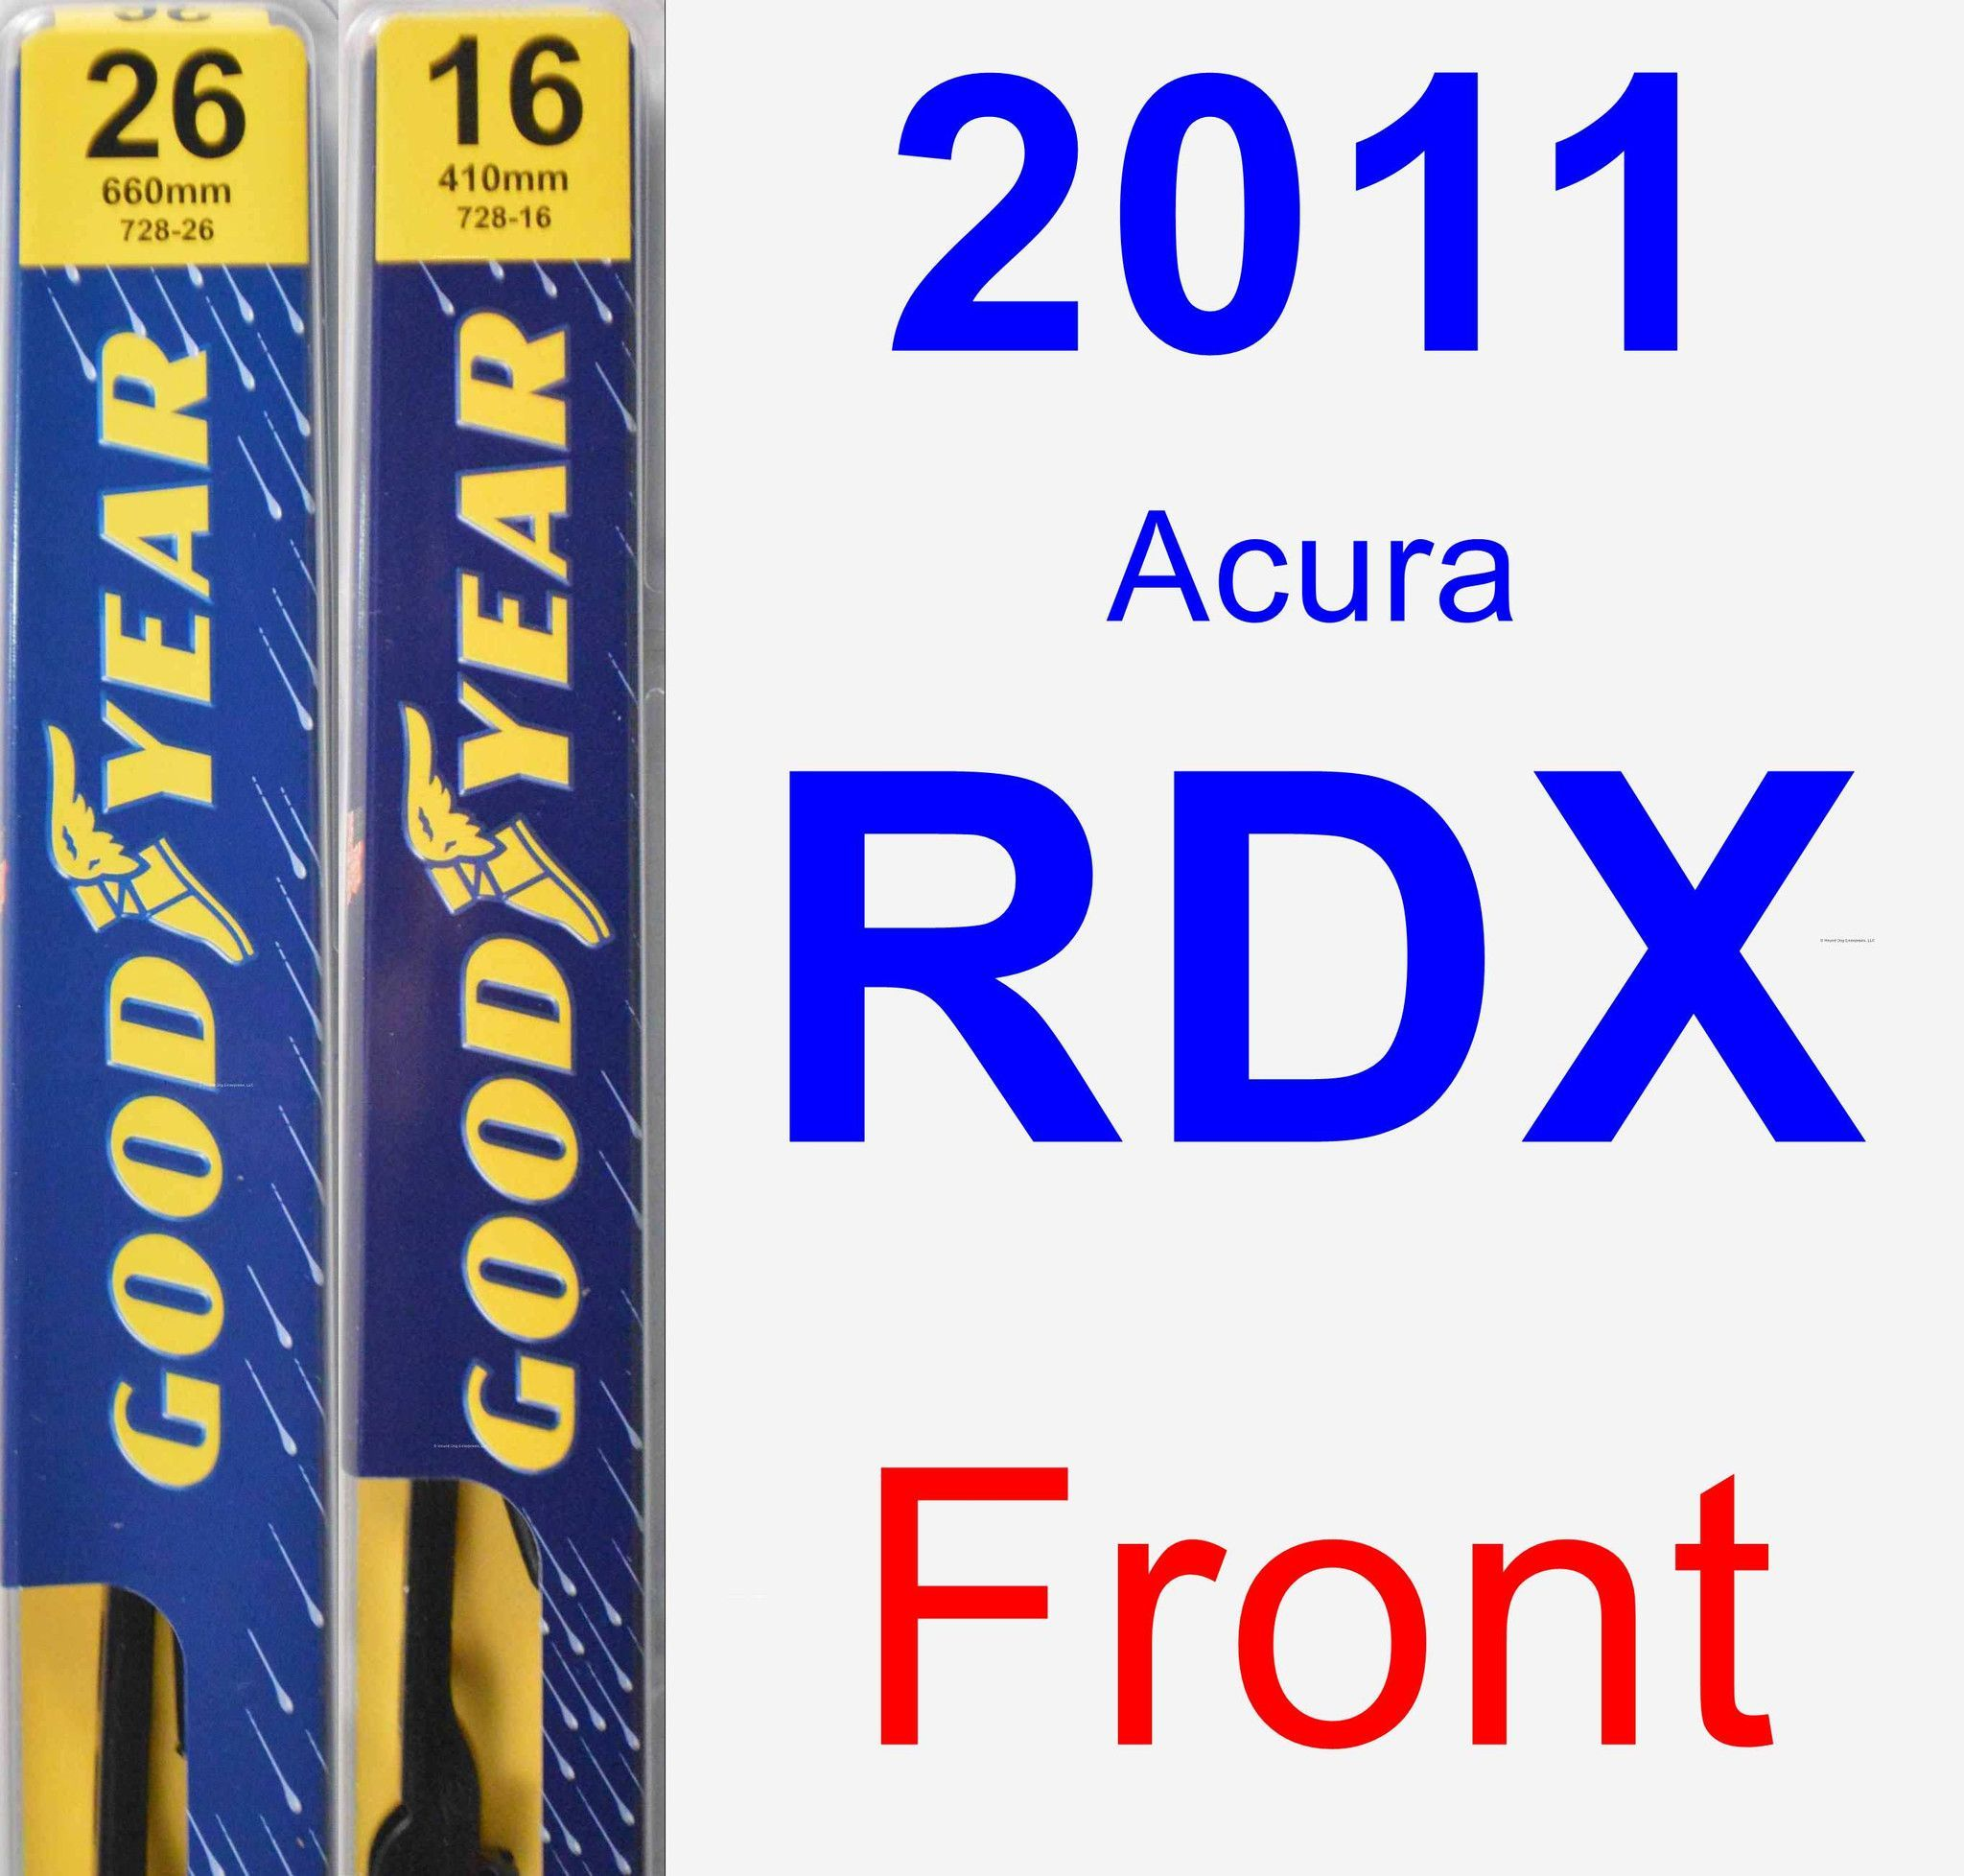 Front Wiper Blade Pack For 2011 Acura RDX